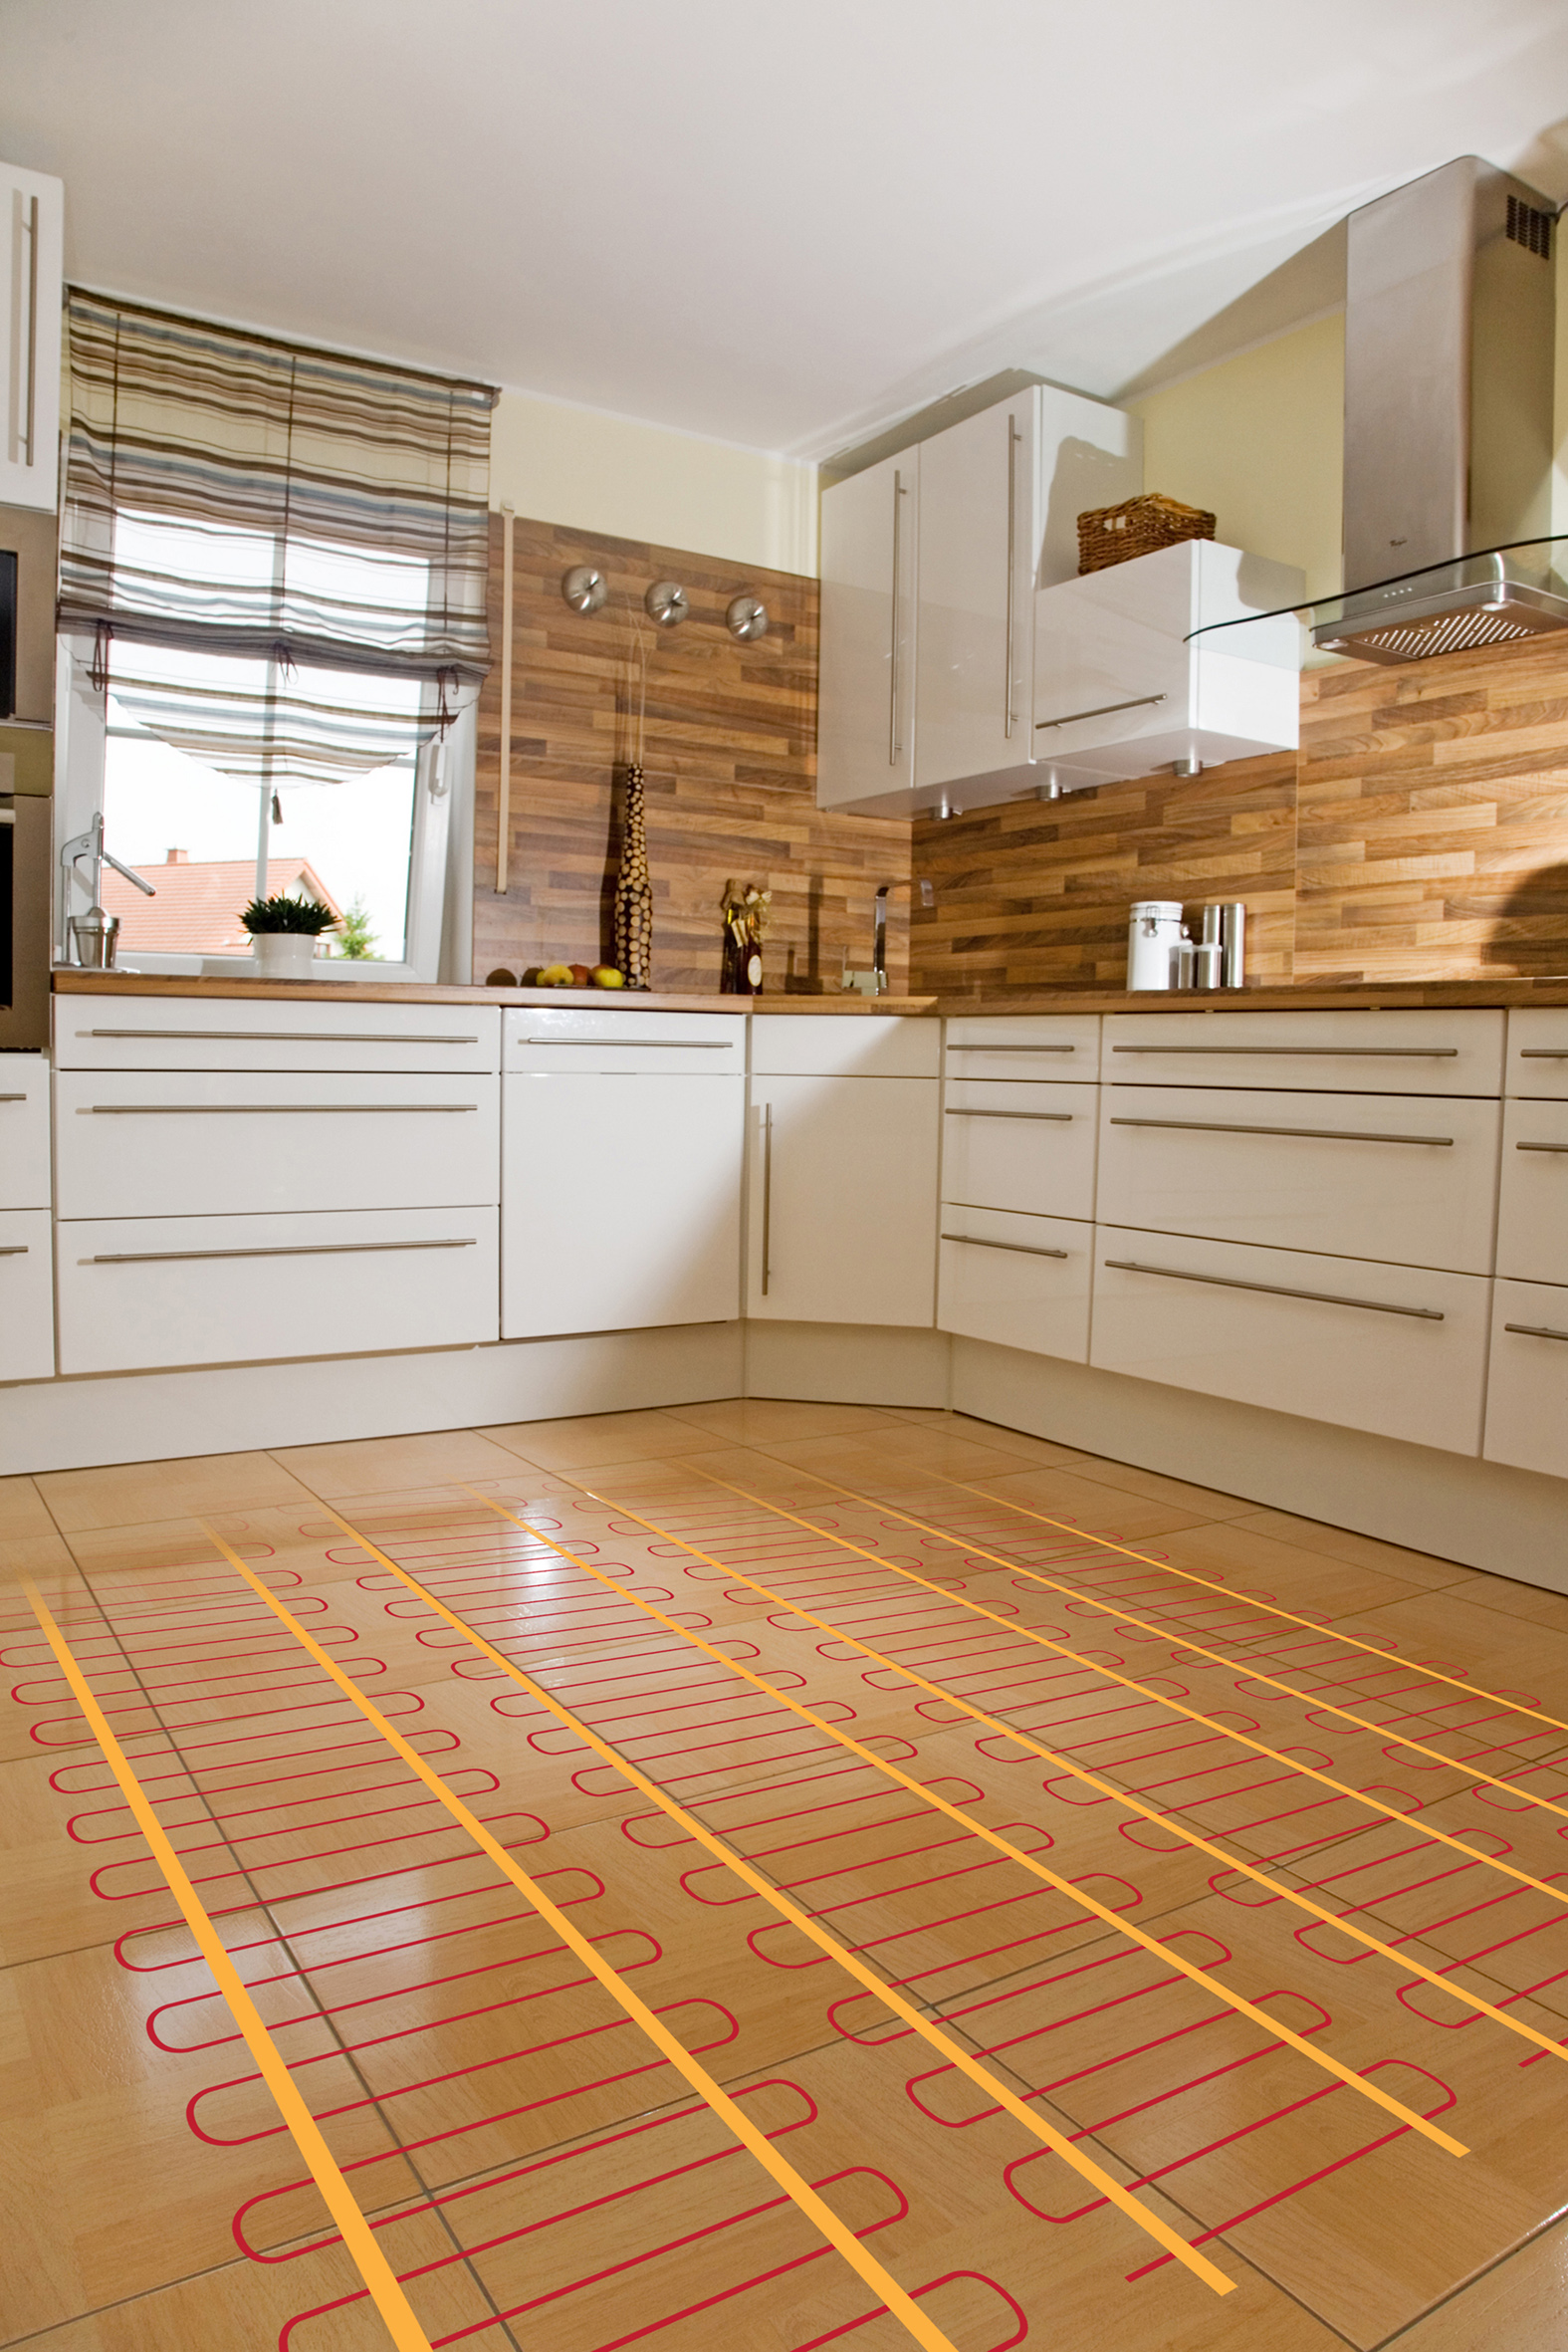 Attractive Did You Know Electric Tankless Water Heaters Are Great For Radiant/Floor  Heating?